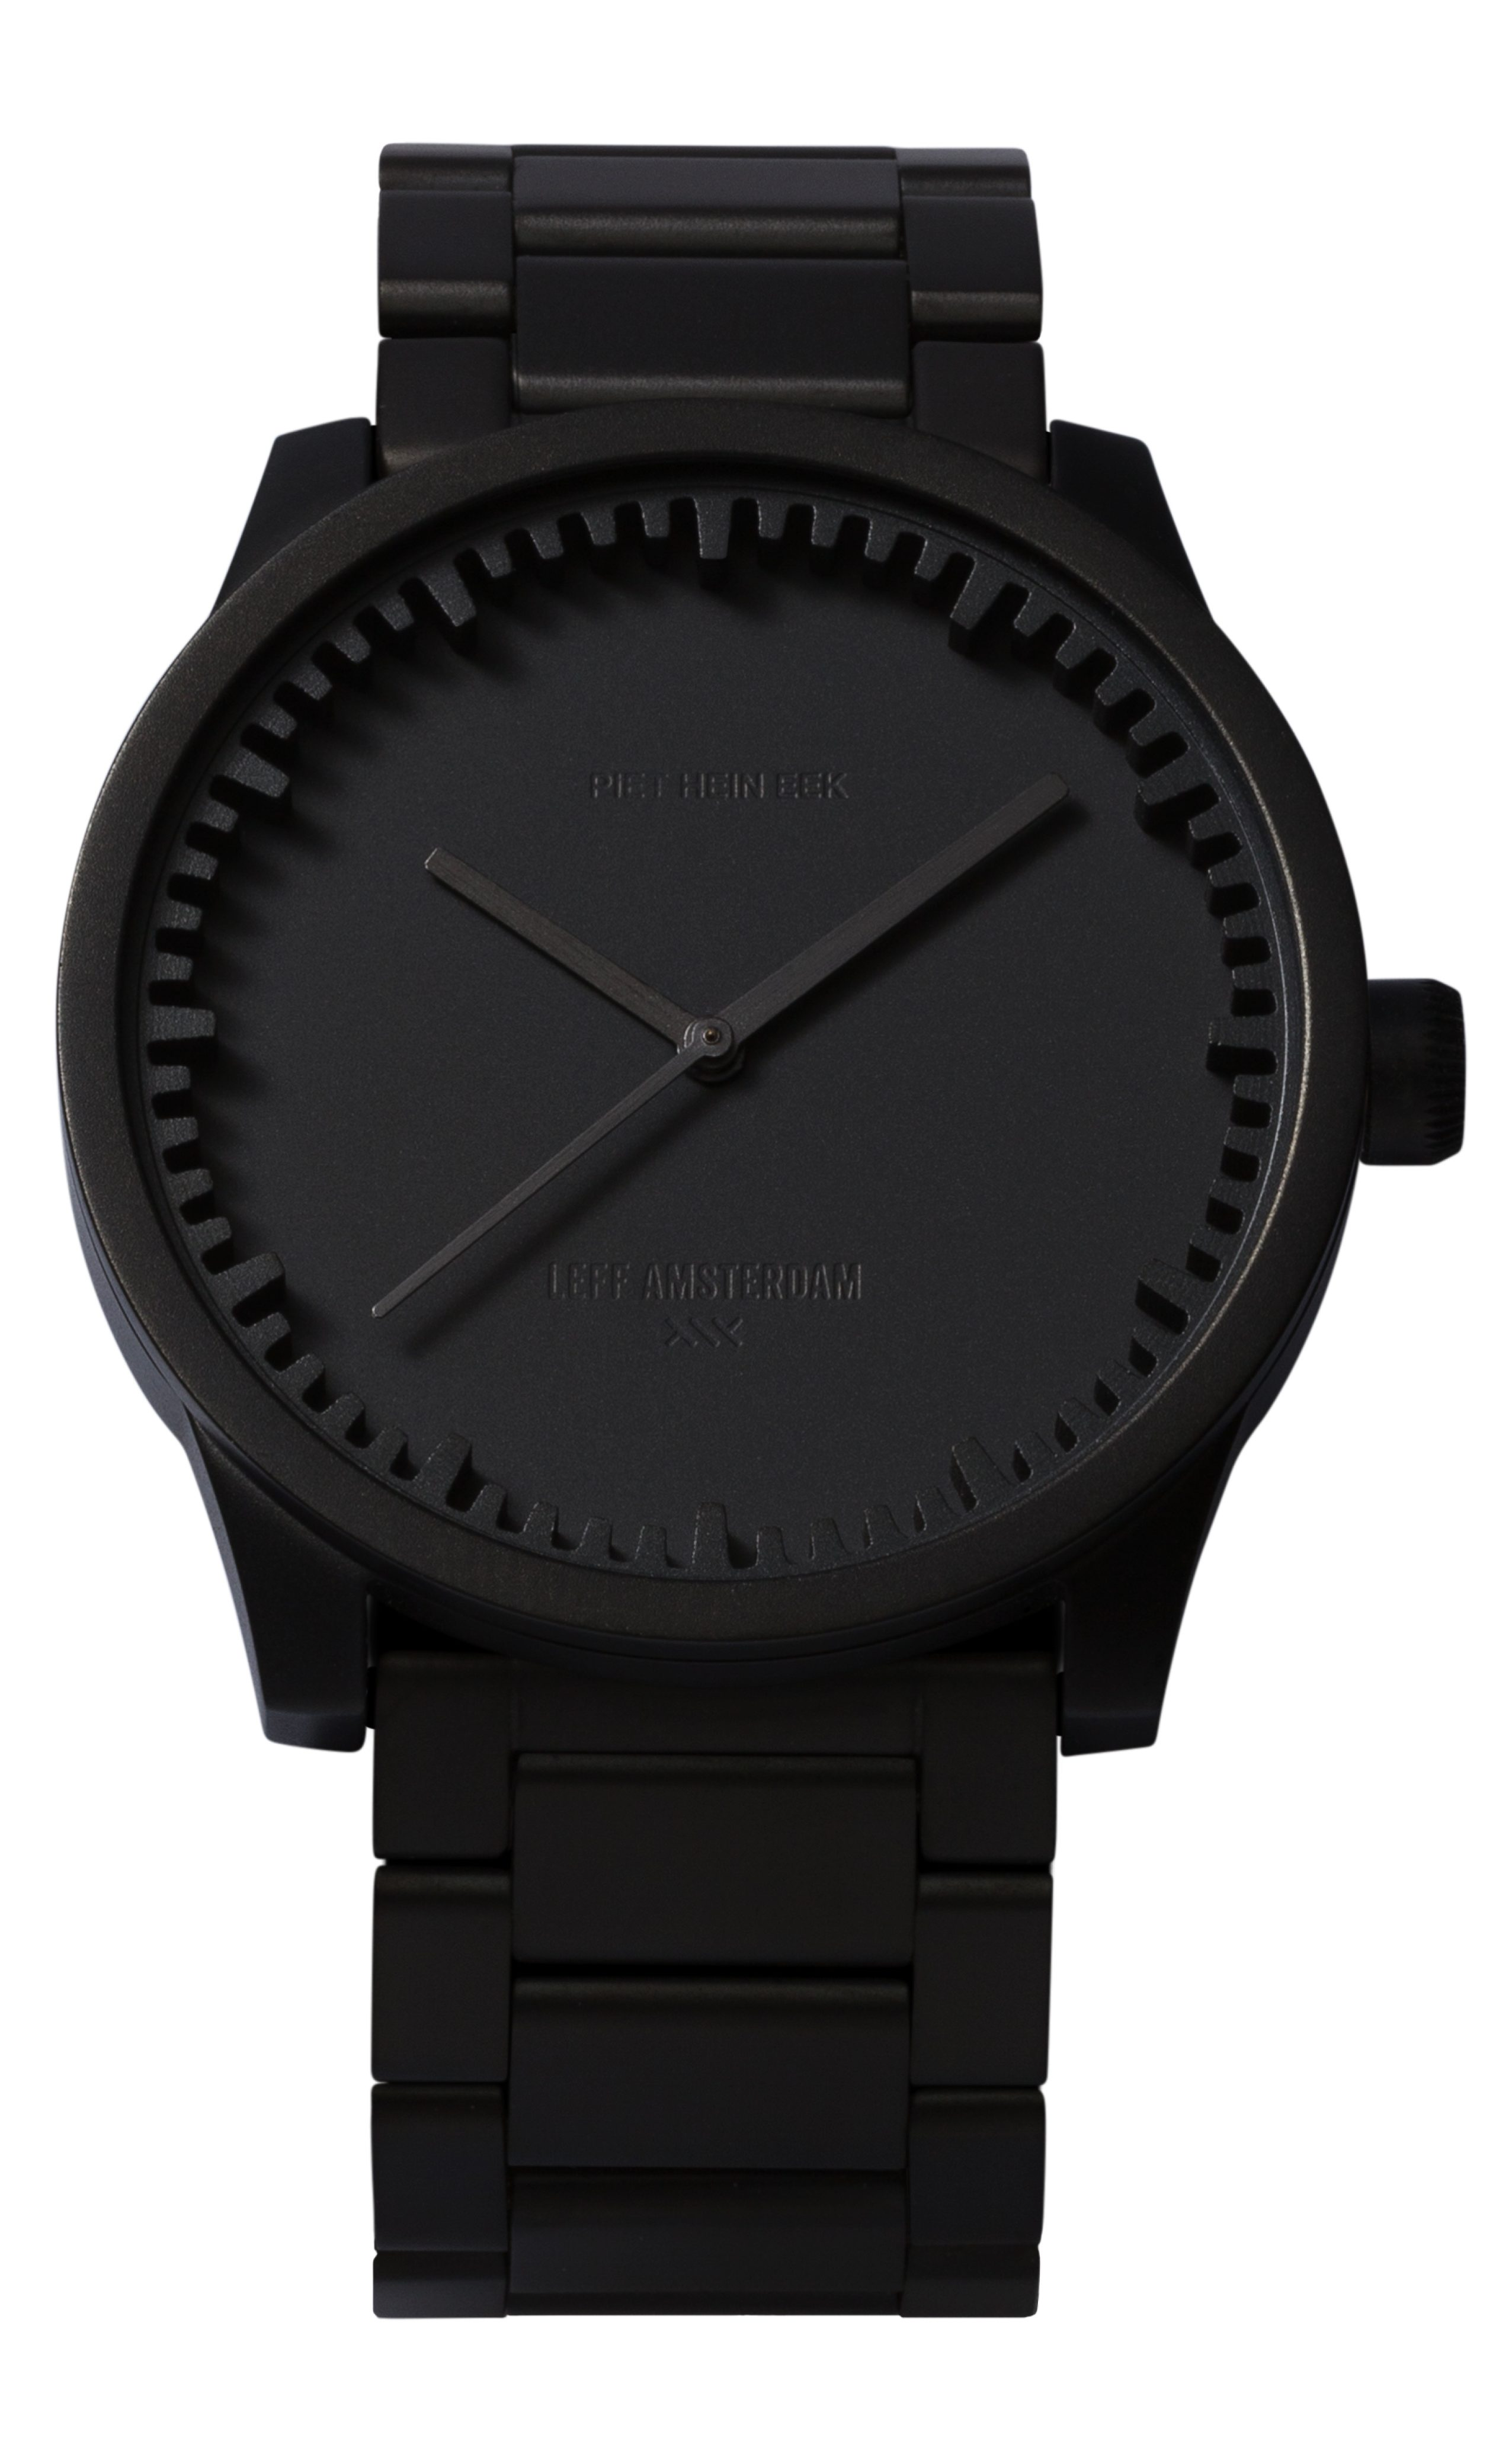 1) S42 black tube watch leff amsterdam design by piet hein eek